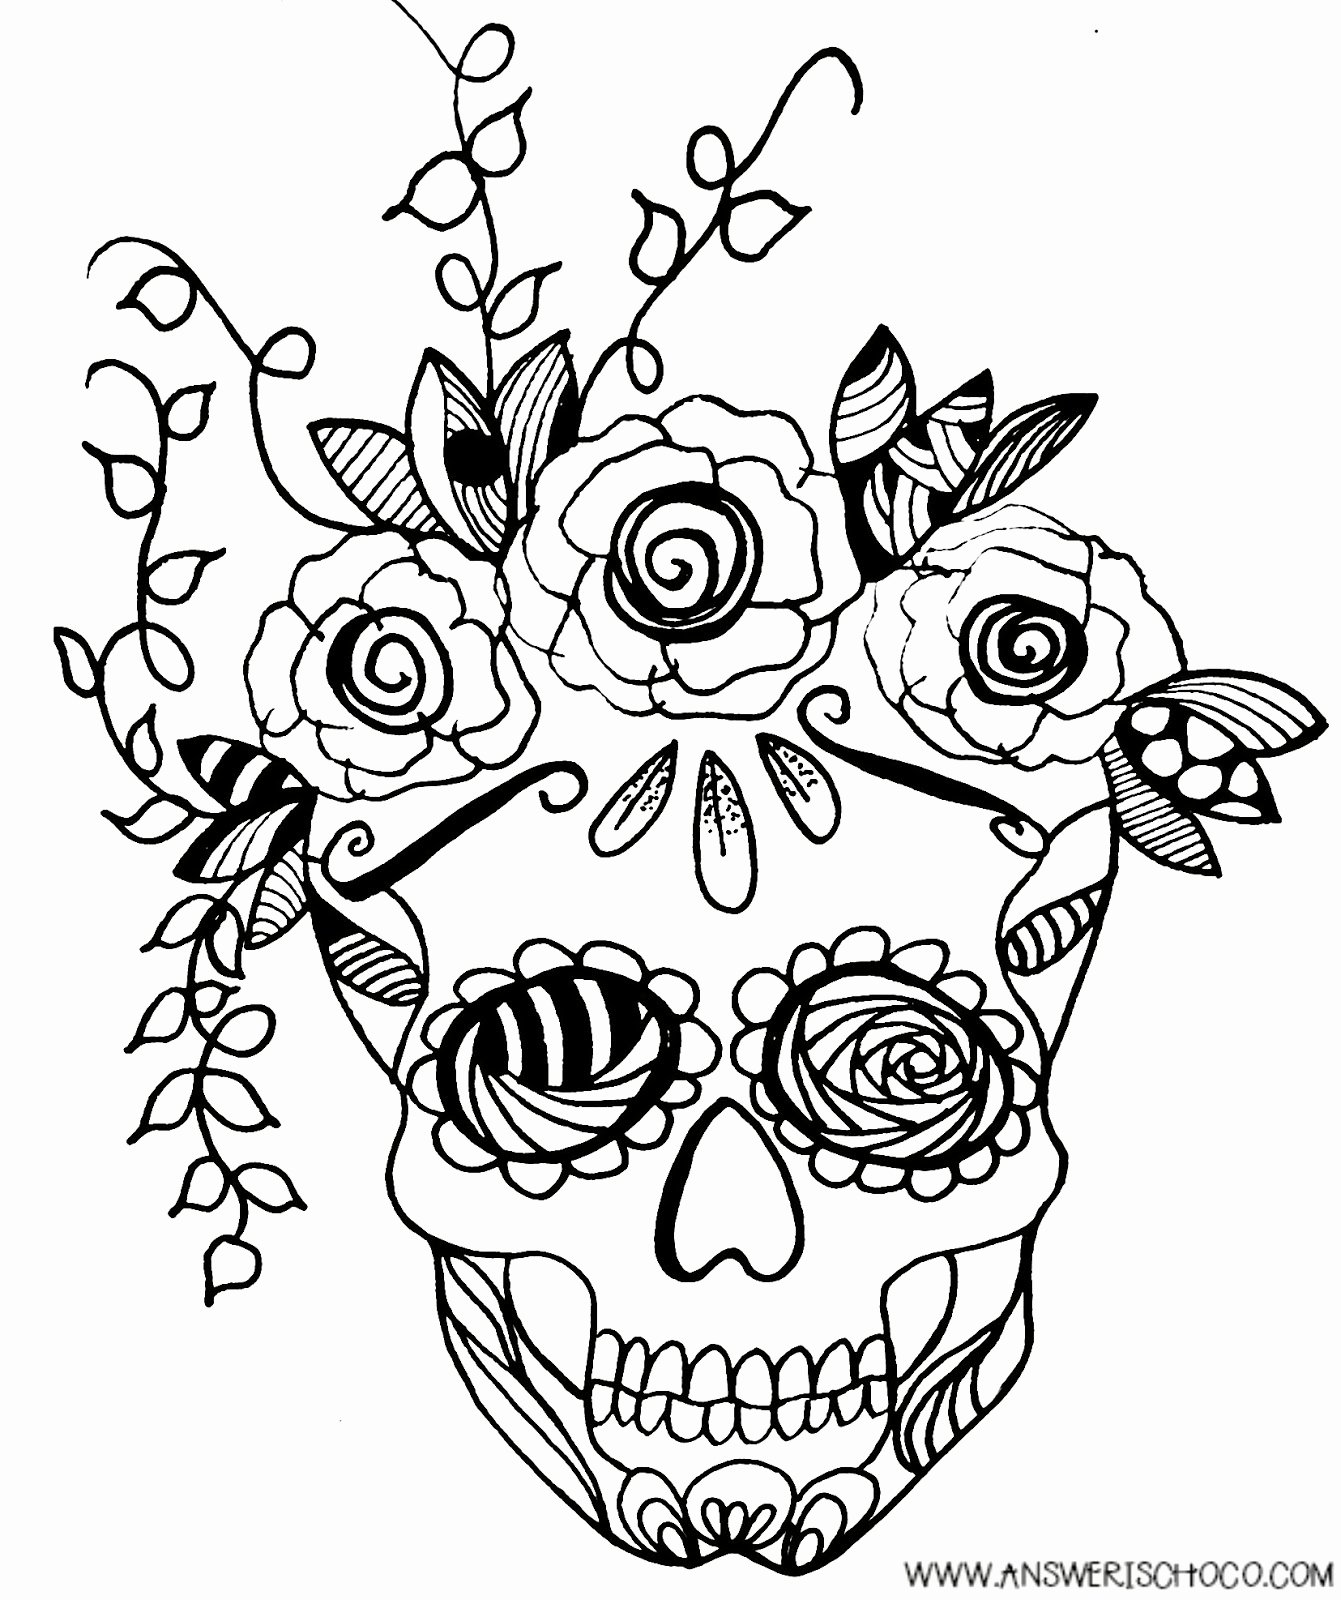 Sugar Skull Outlines Fresh the Answer is Chocolate Sugar Skull